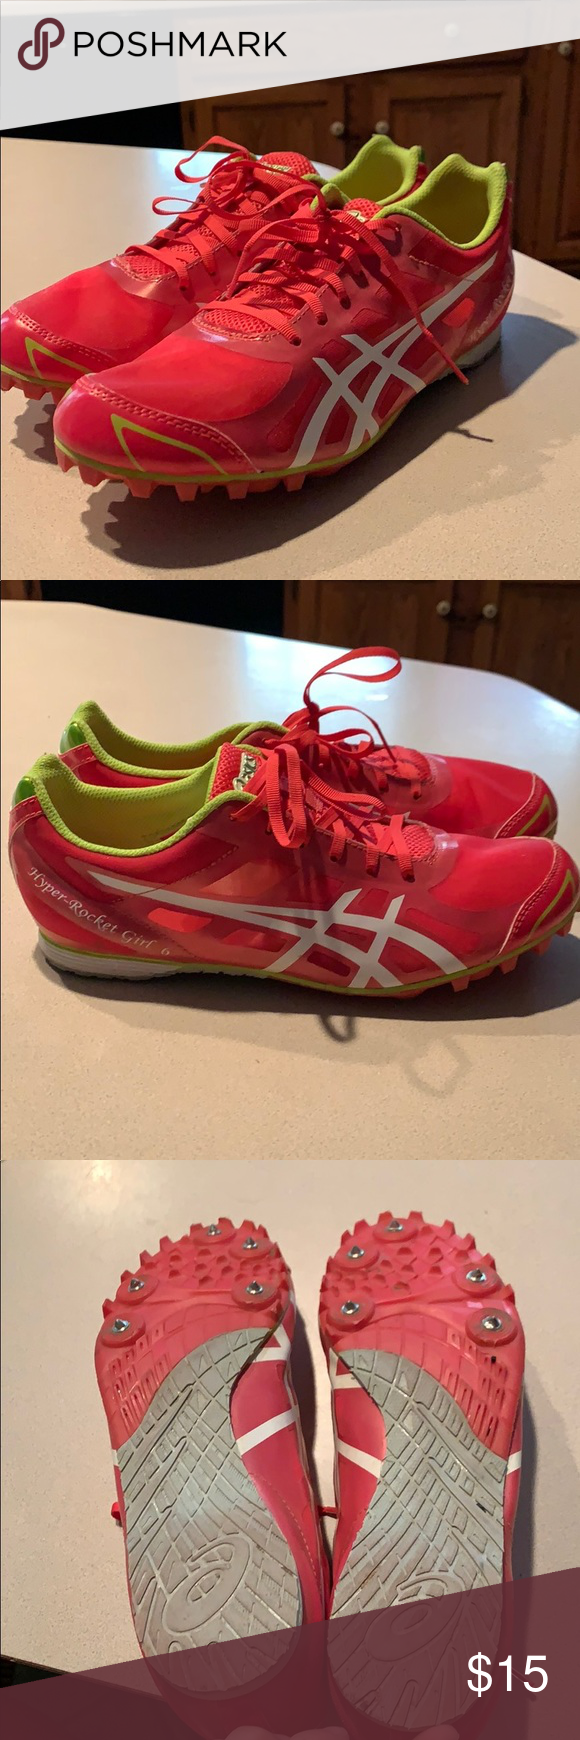 cross country spikes size 6